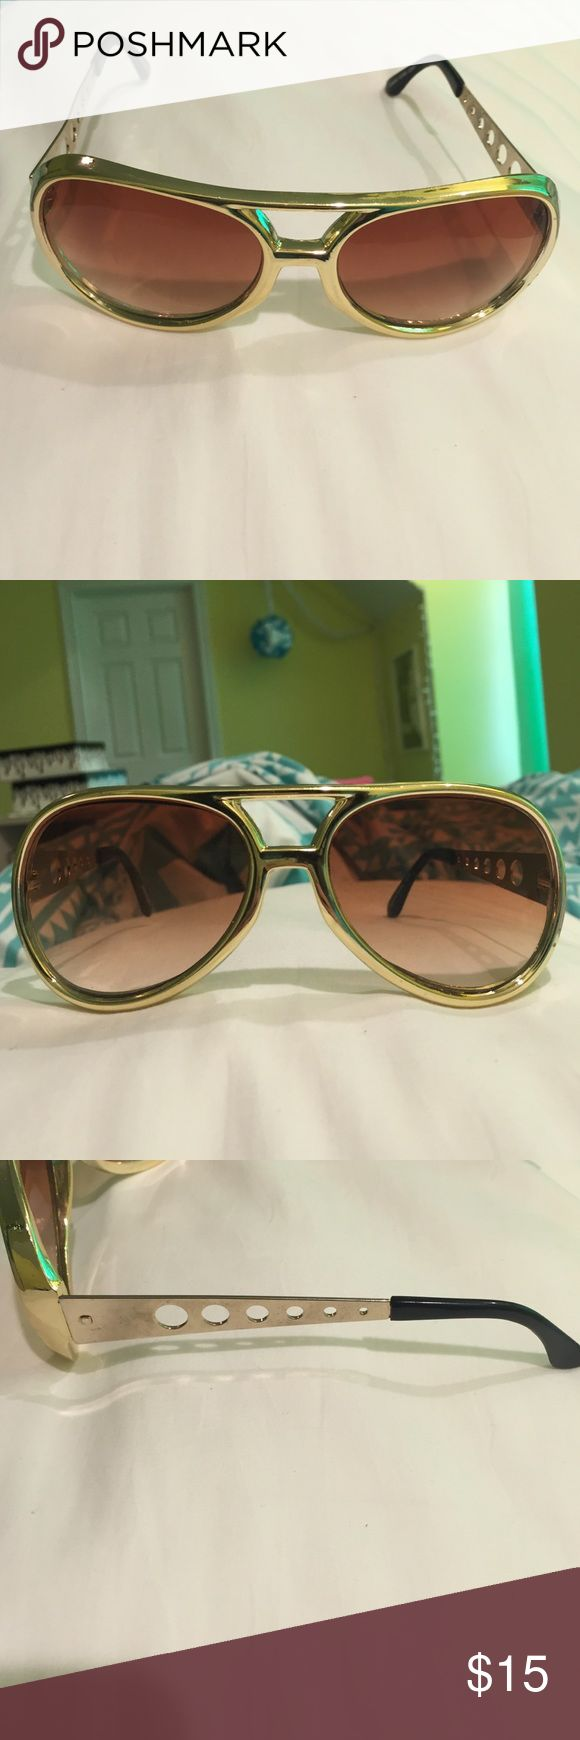 Elvis style gold aviator sunglasses Bought at Graceland these Elvis style sunglasses are OP. Gold aviators THAG are gently used Accessories Sunglasses